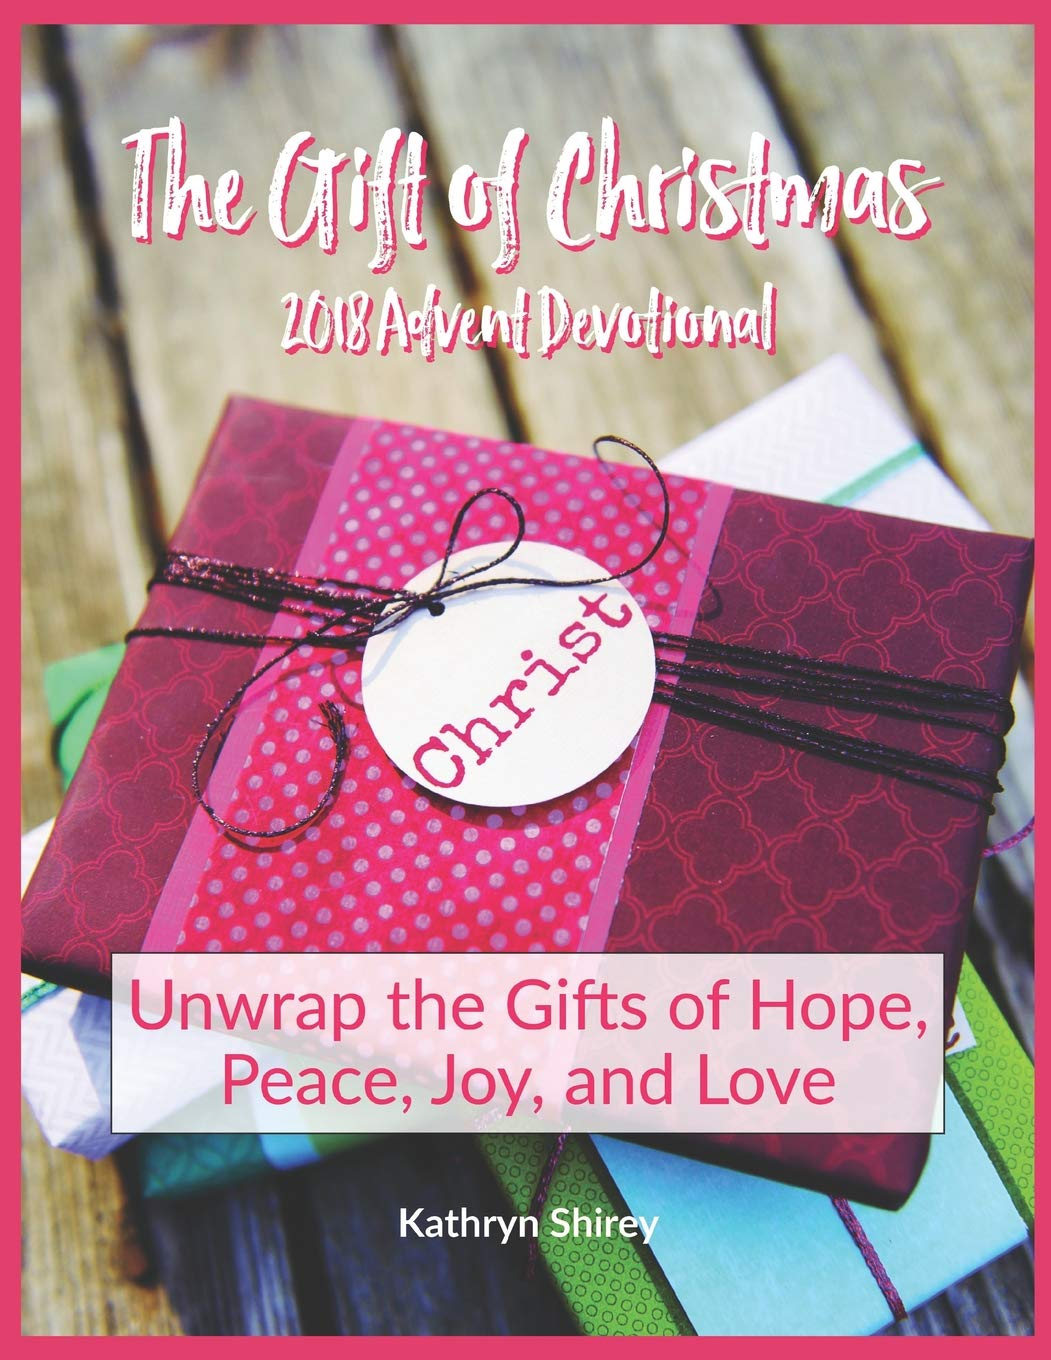 Best Christmas Devotional Ever.The Gift Of Christmas Advent Devotional 2018 Kathryn